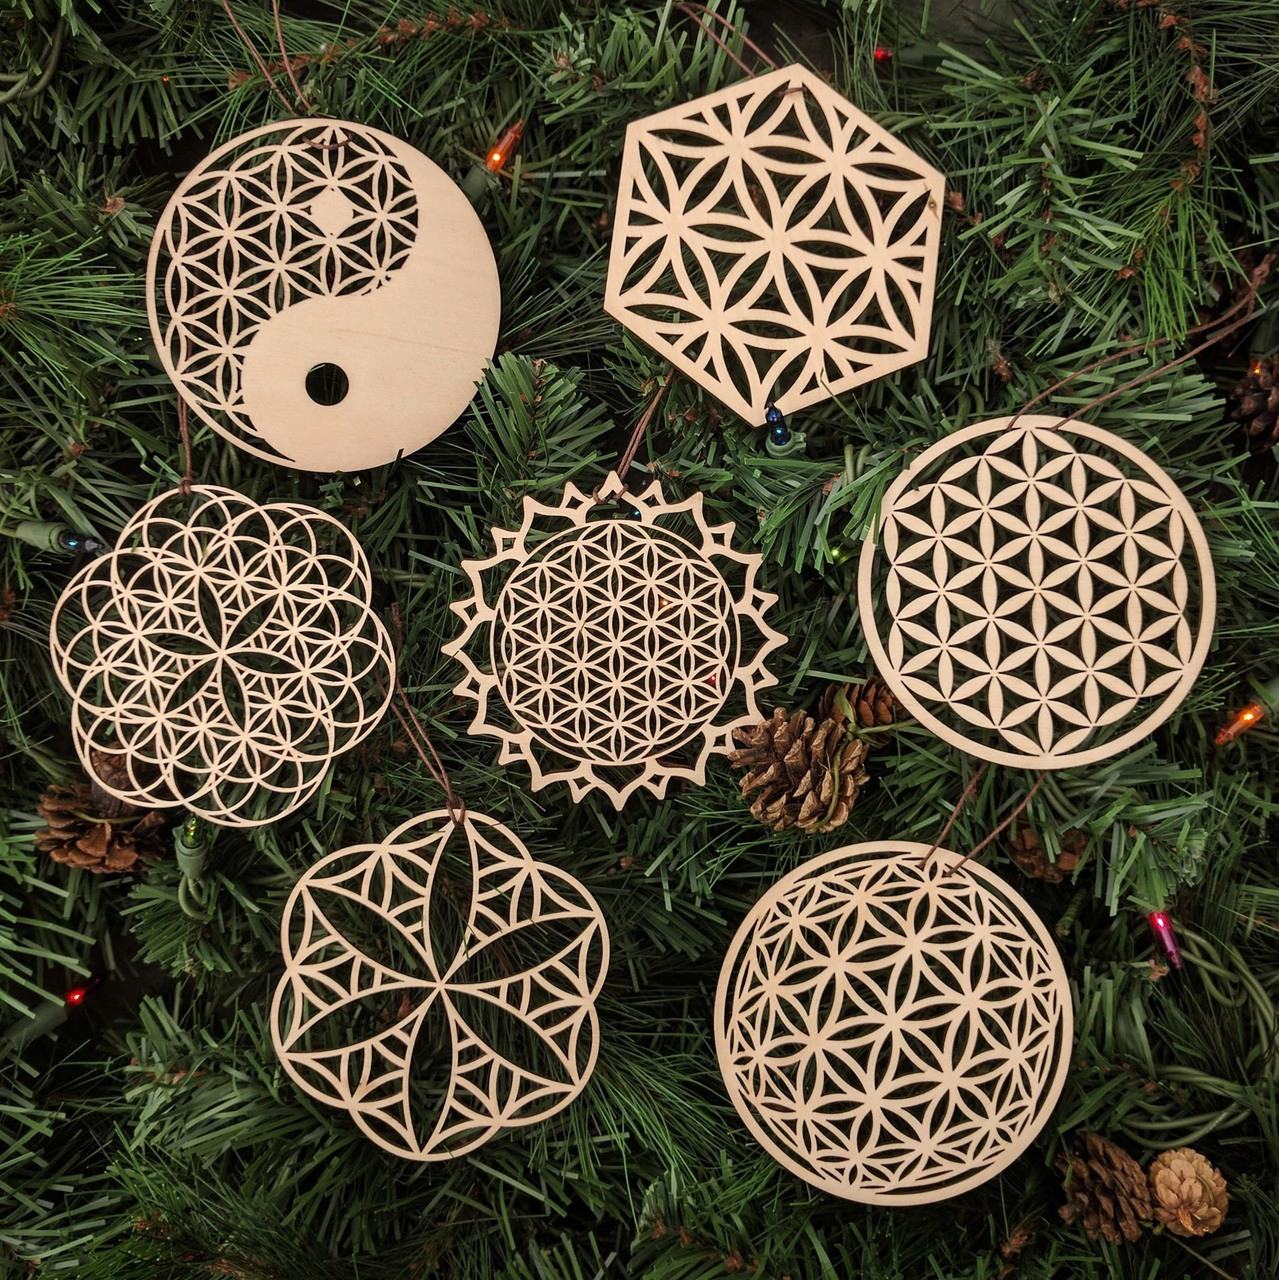 Holiday Decoration Ornament Sacred Geometry Symbol Laser Cut Wood Wooden Yin Yang Flower of Life Ornament